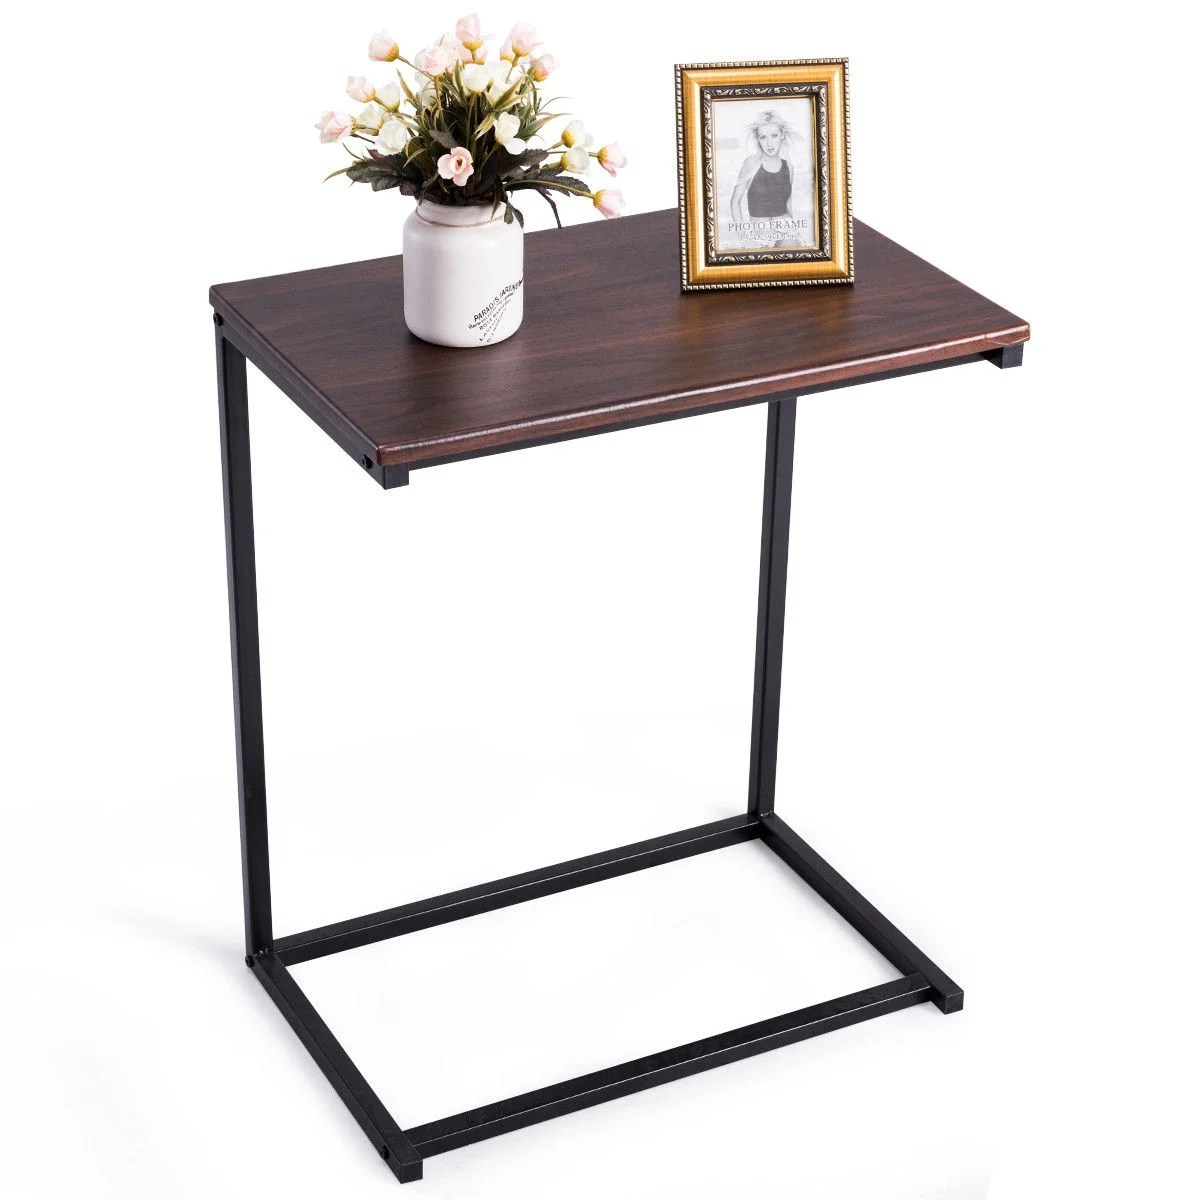 Sofa In Home Office Gymax 26 Laptop Holder Sofa Side End Table C Table Home Office Furniture